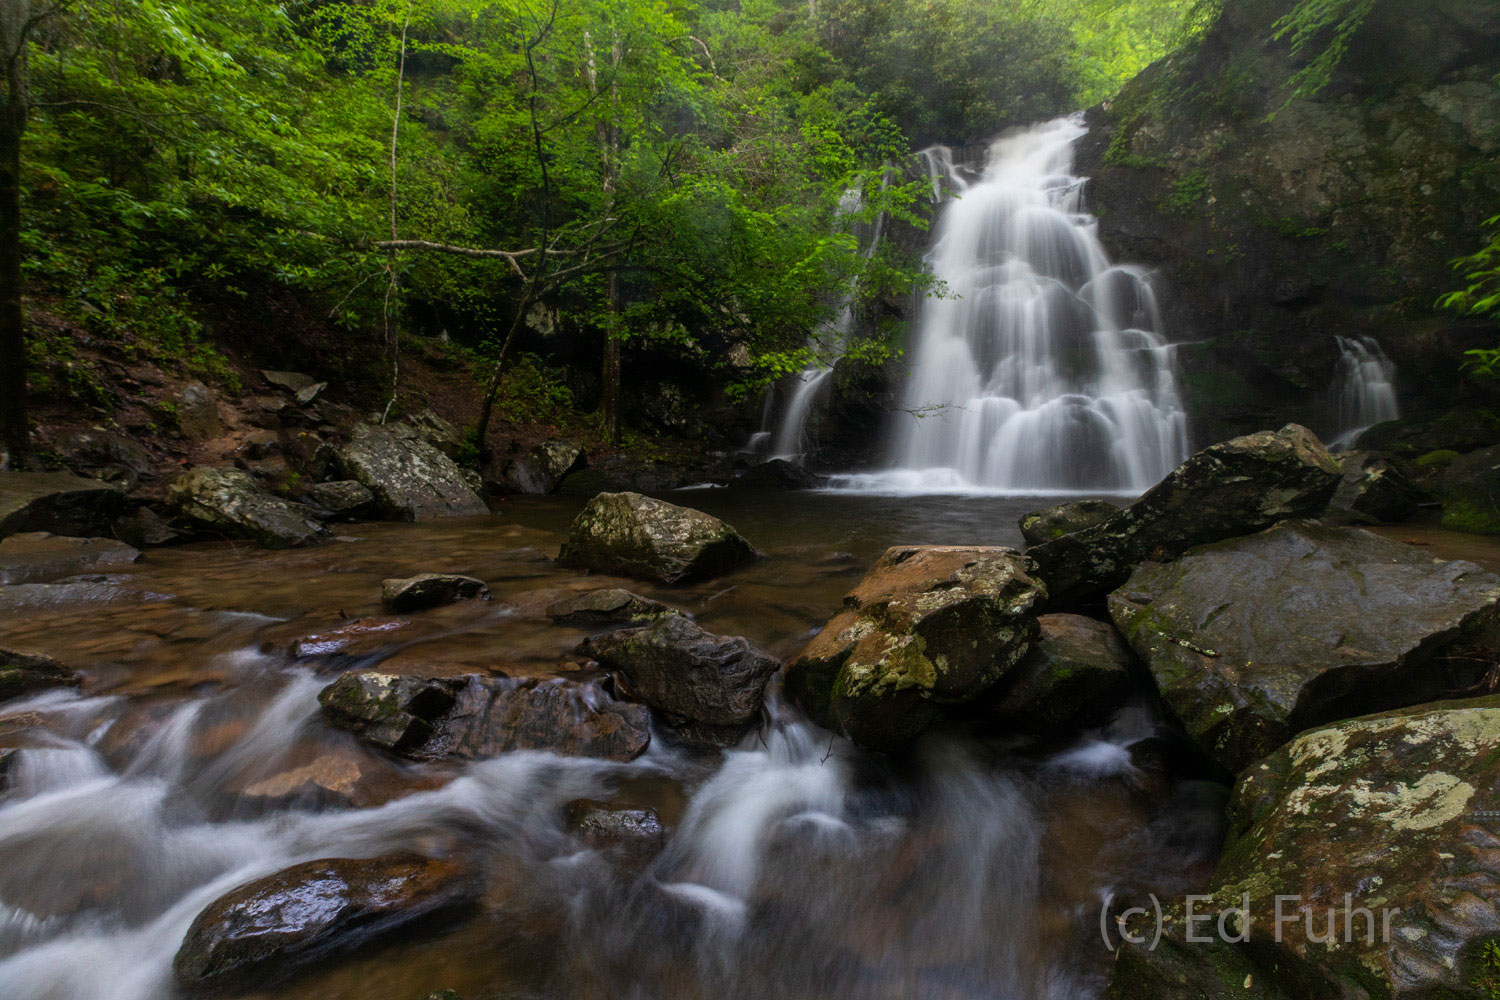 A gentle cascade streams below Spruce Flat waterfall, located near Tremont in the Great Smoky Mountains.